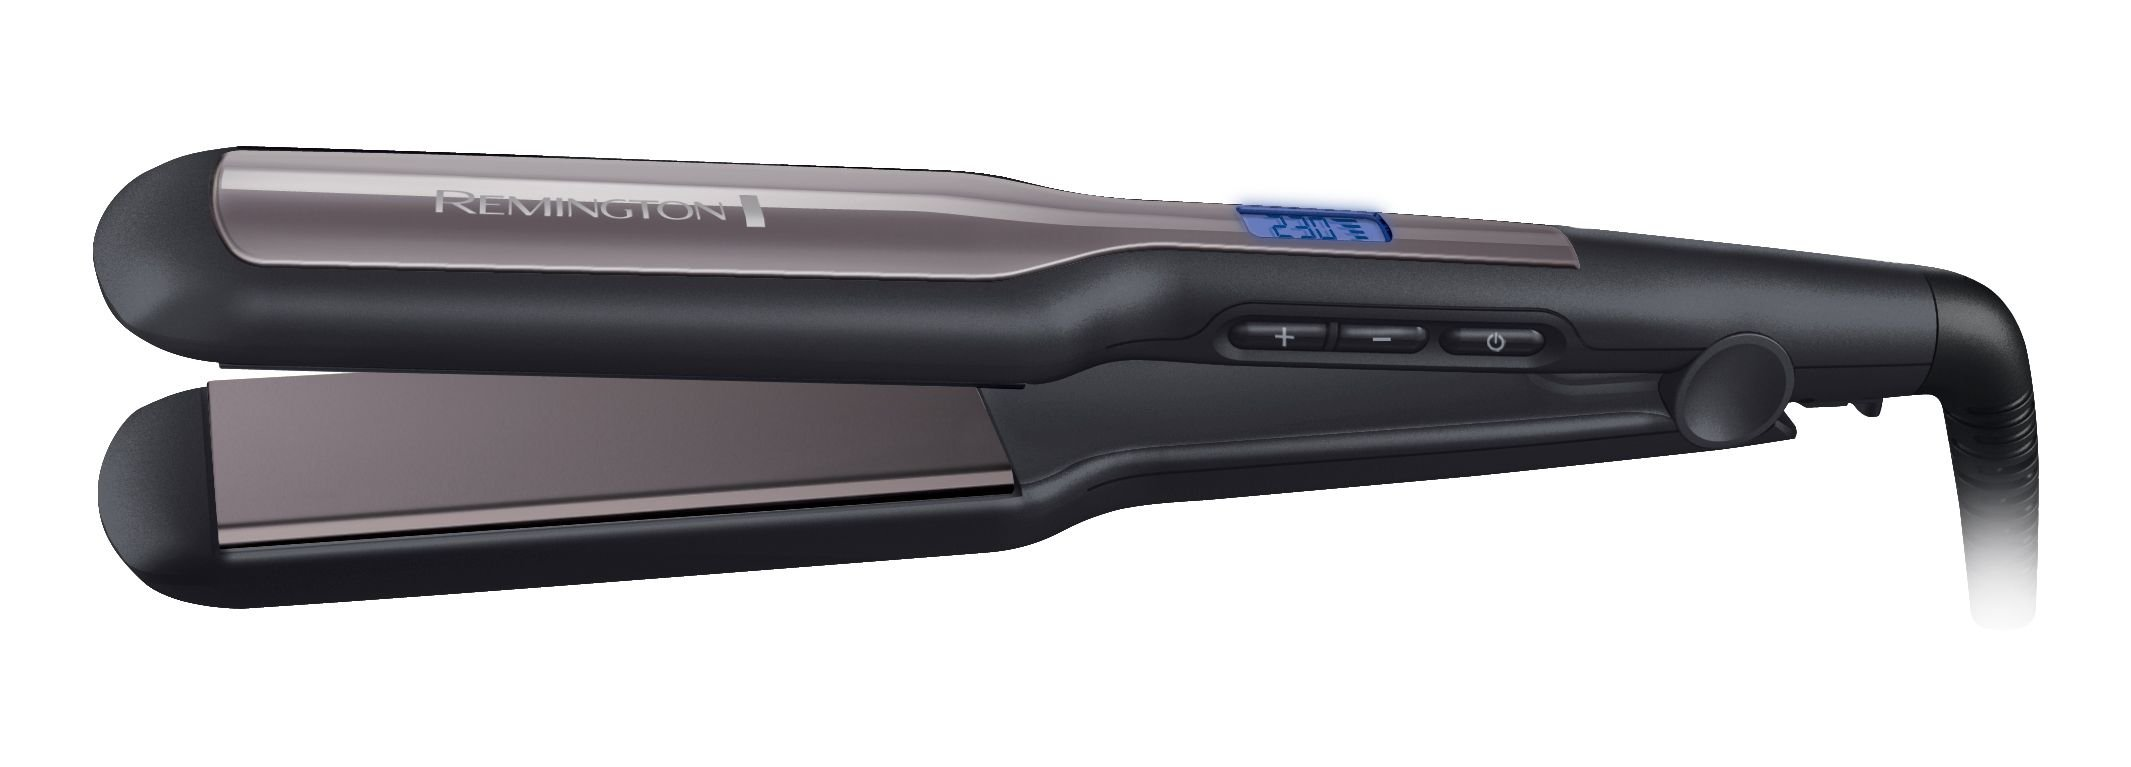 Remington Lisseur S5525 PRO Céramique Extra product image